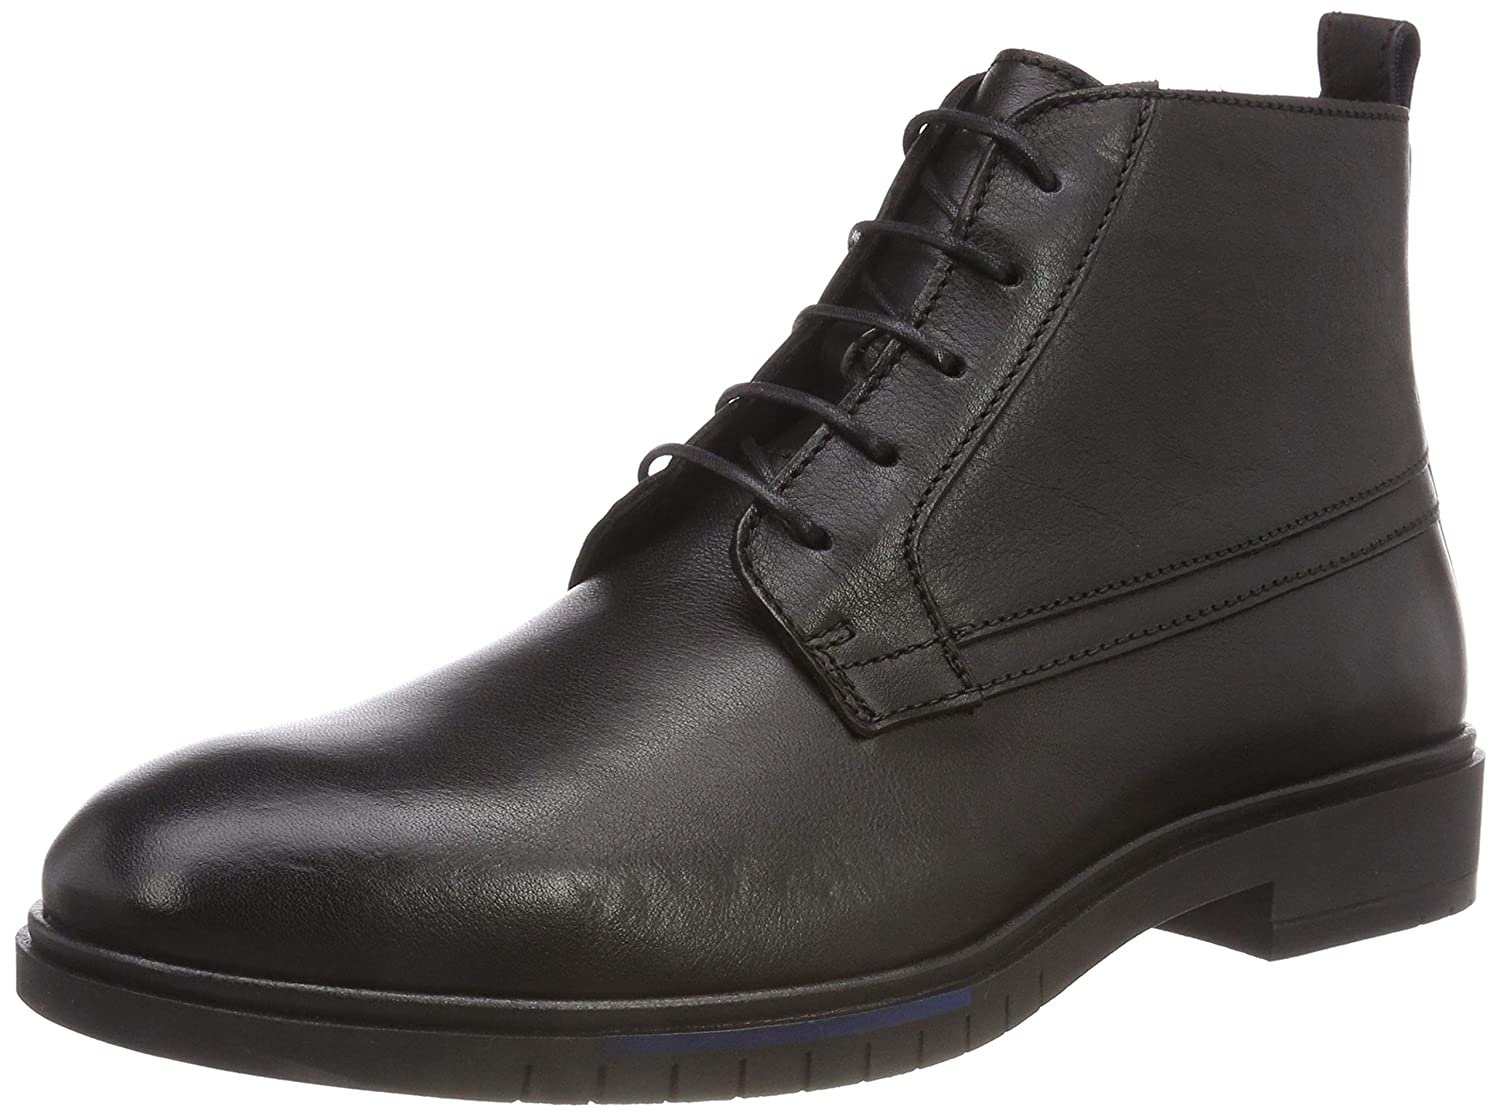 TALLA 41 EU. Tommy Hilfiger Flexible Dressy Leather Boot, Botas Desert para Hombre